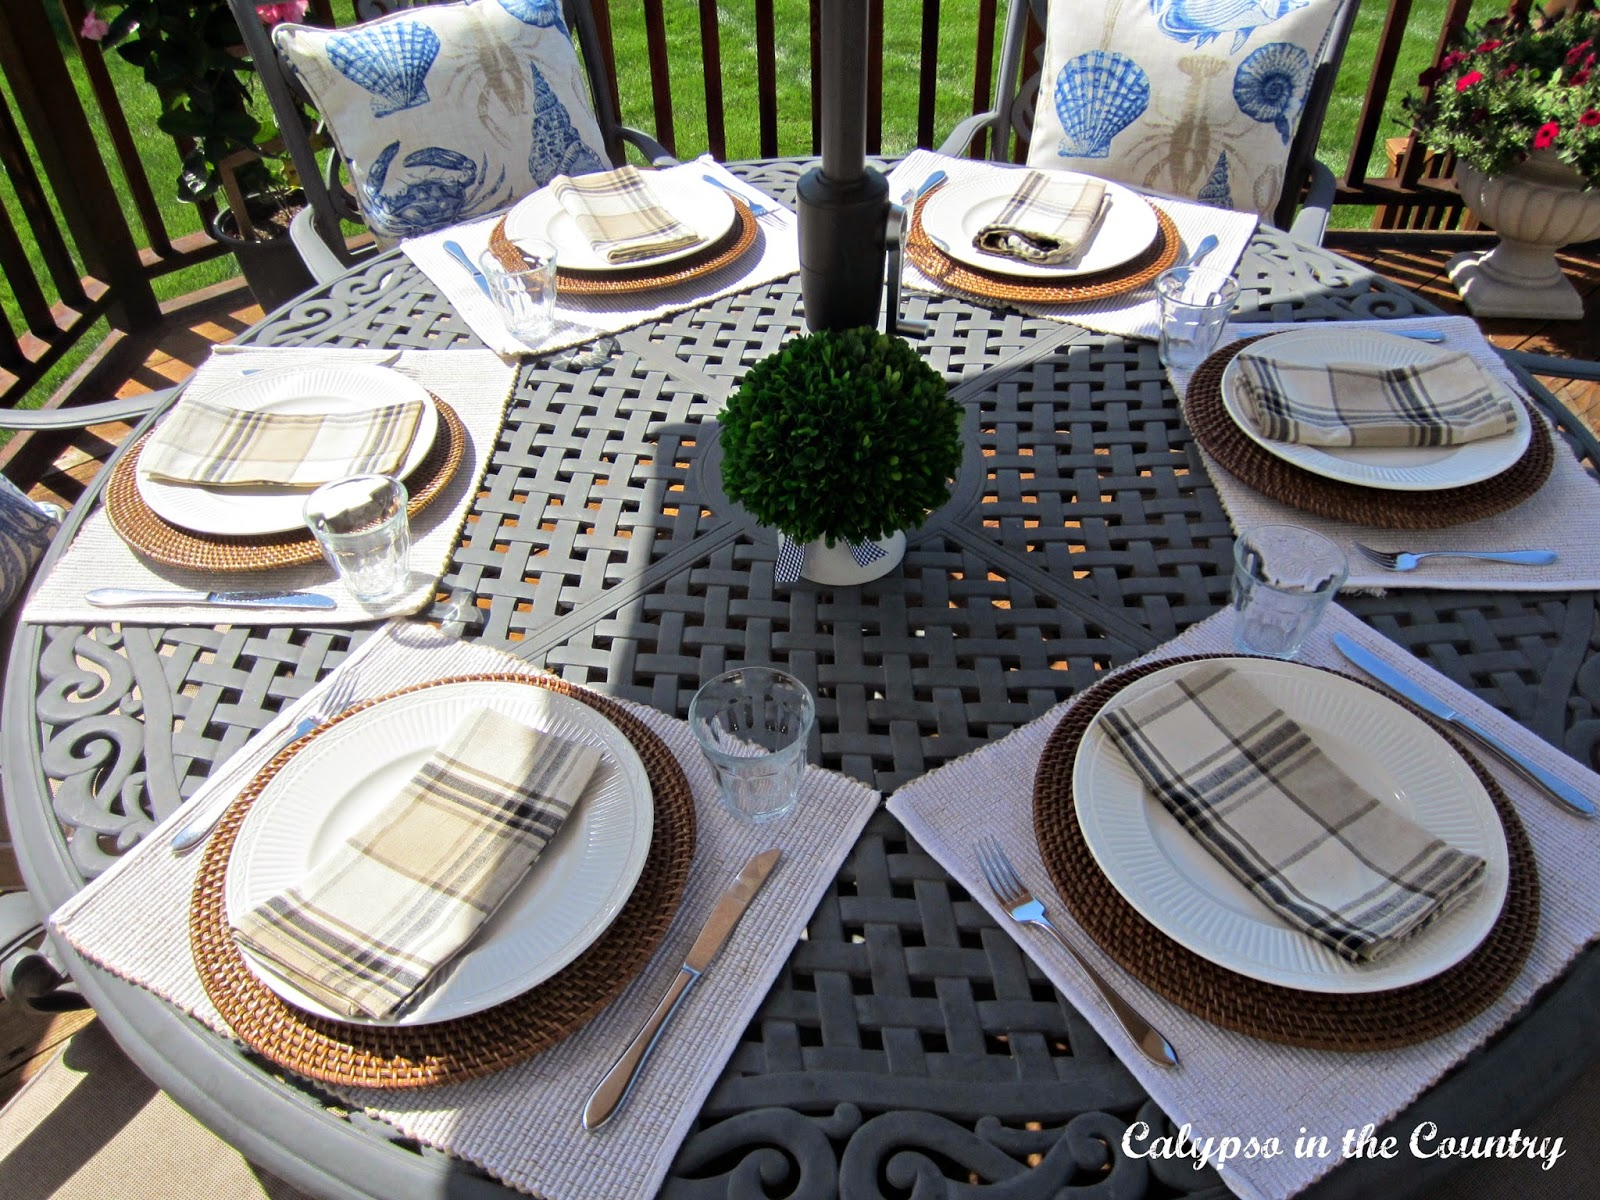 Calypso in the country father s day table setting